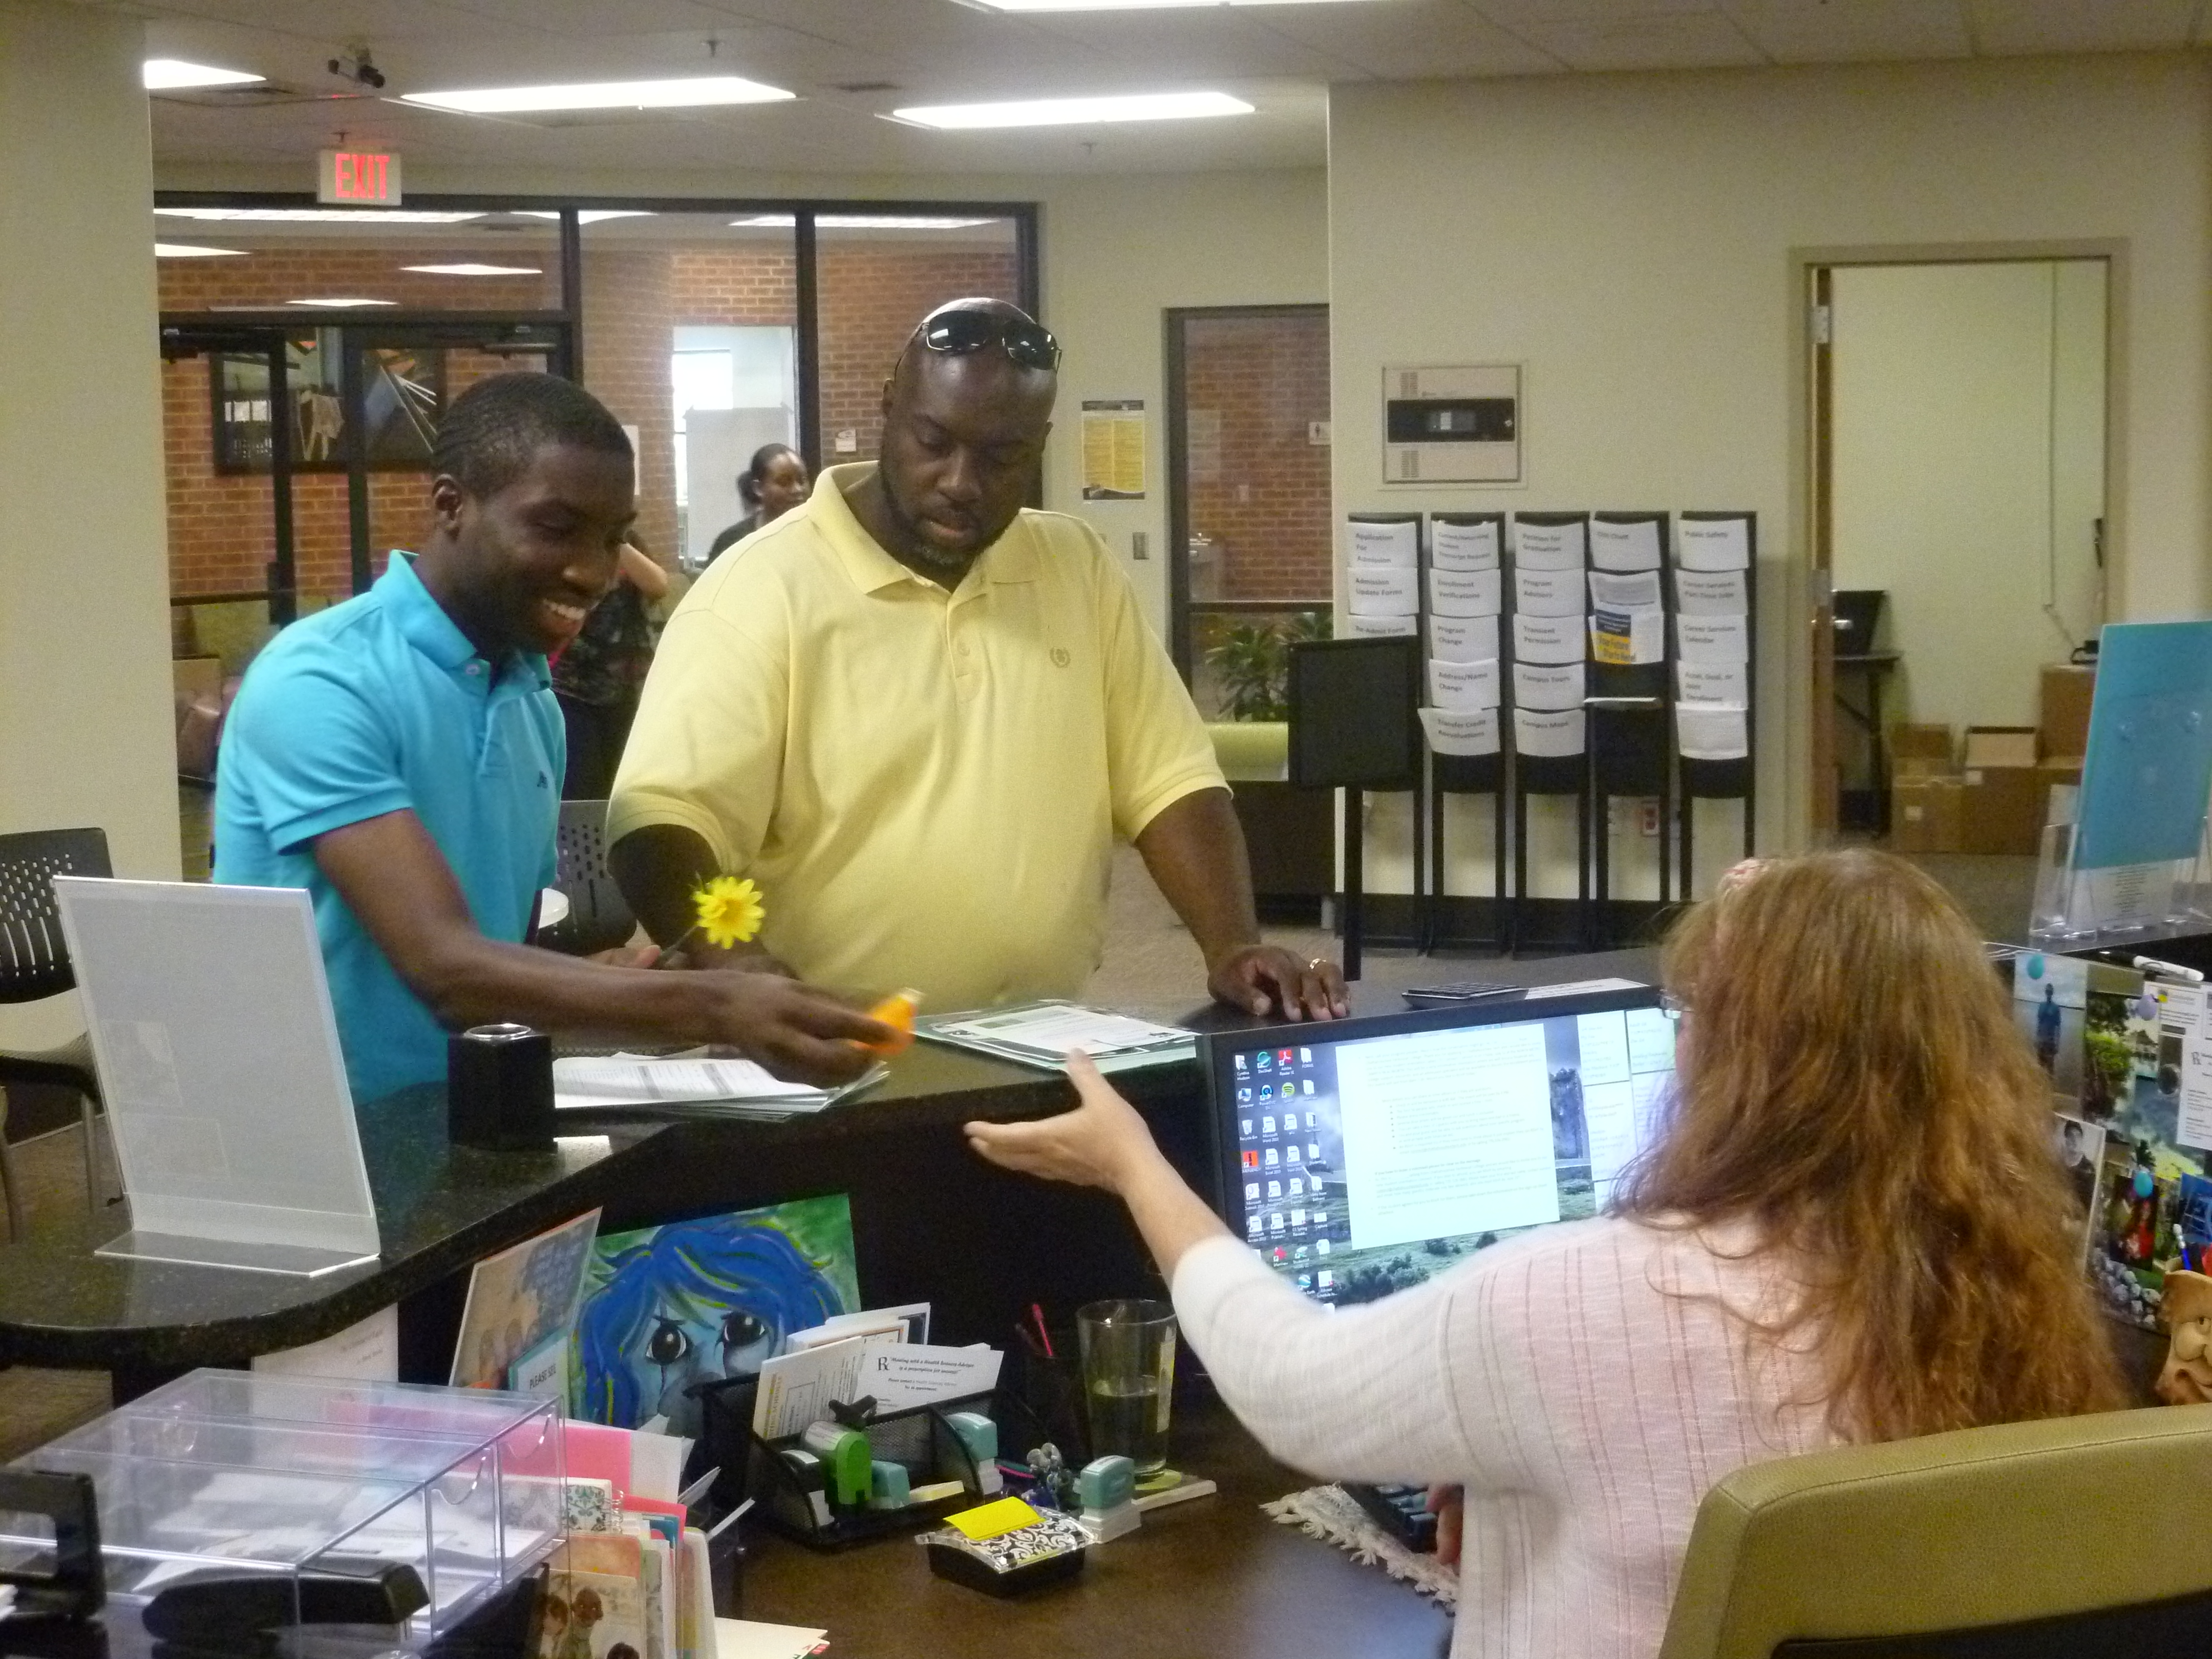 Student affairs helping 2 students at North Metro